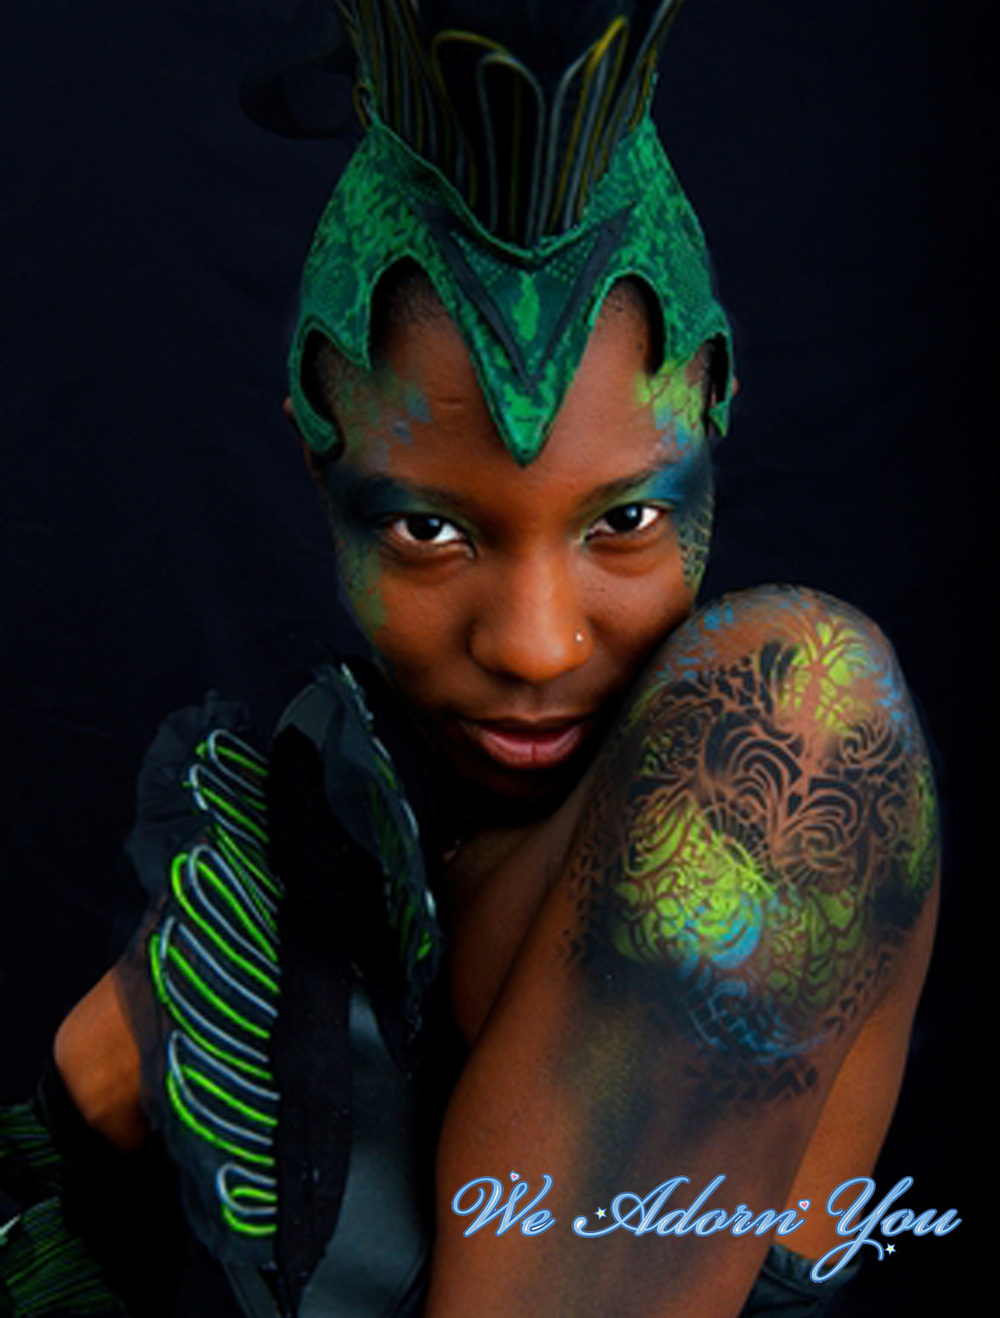 Body Painting Warrior - We Adorn You.jpg